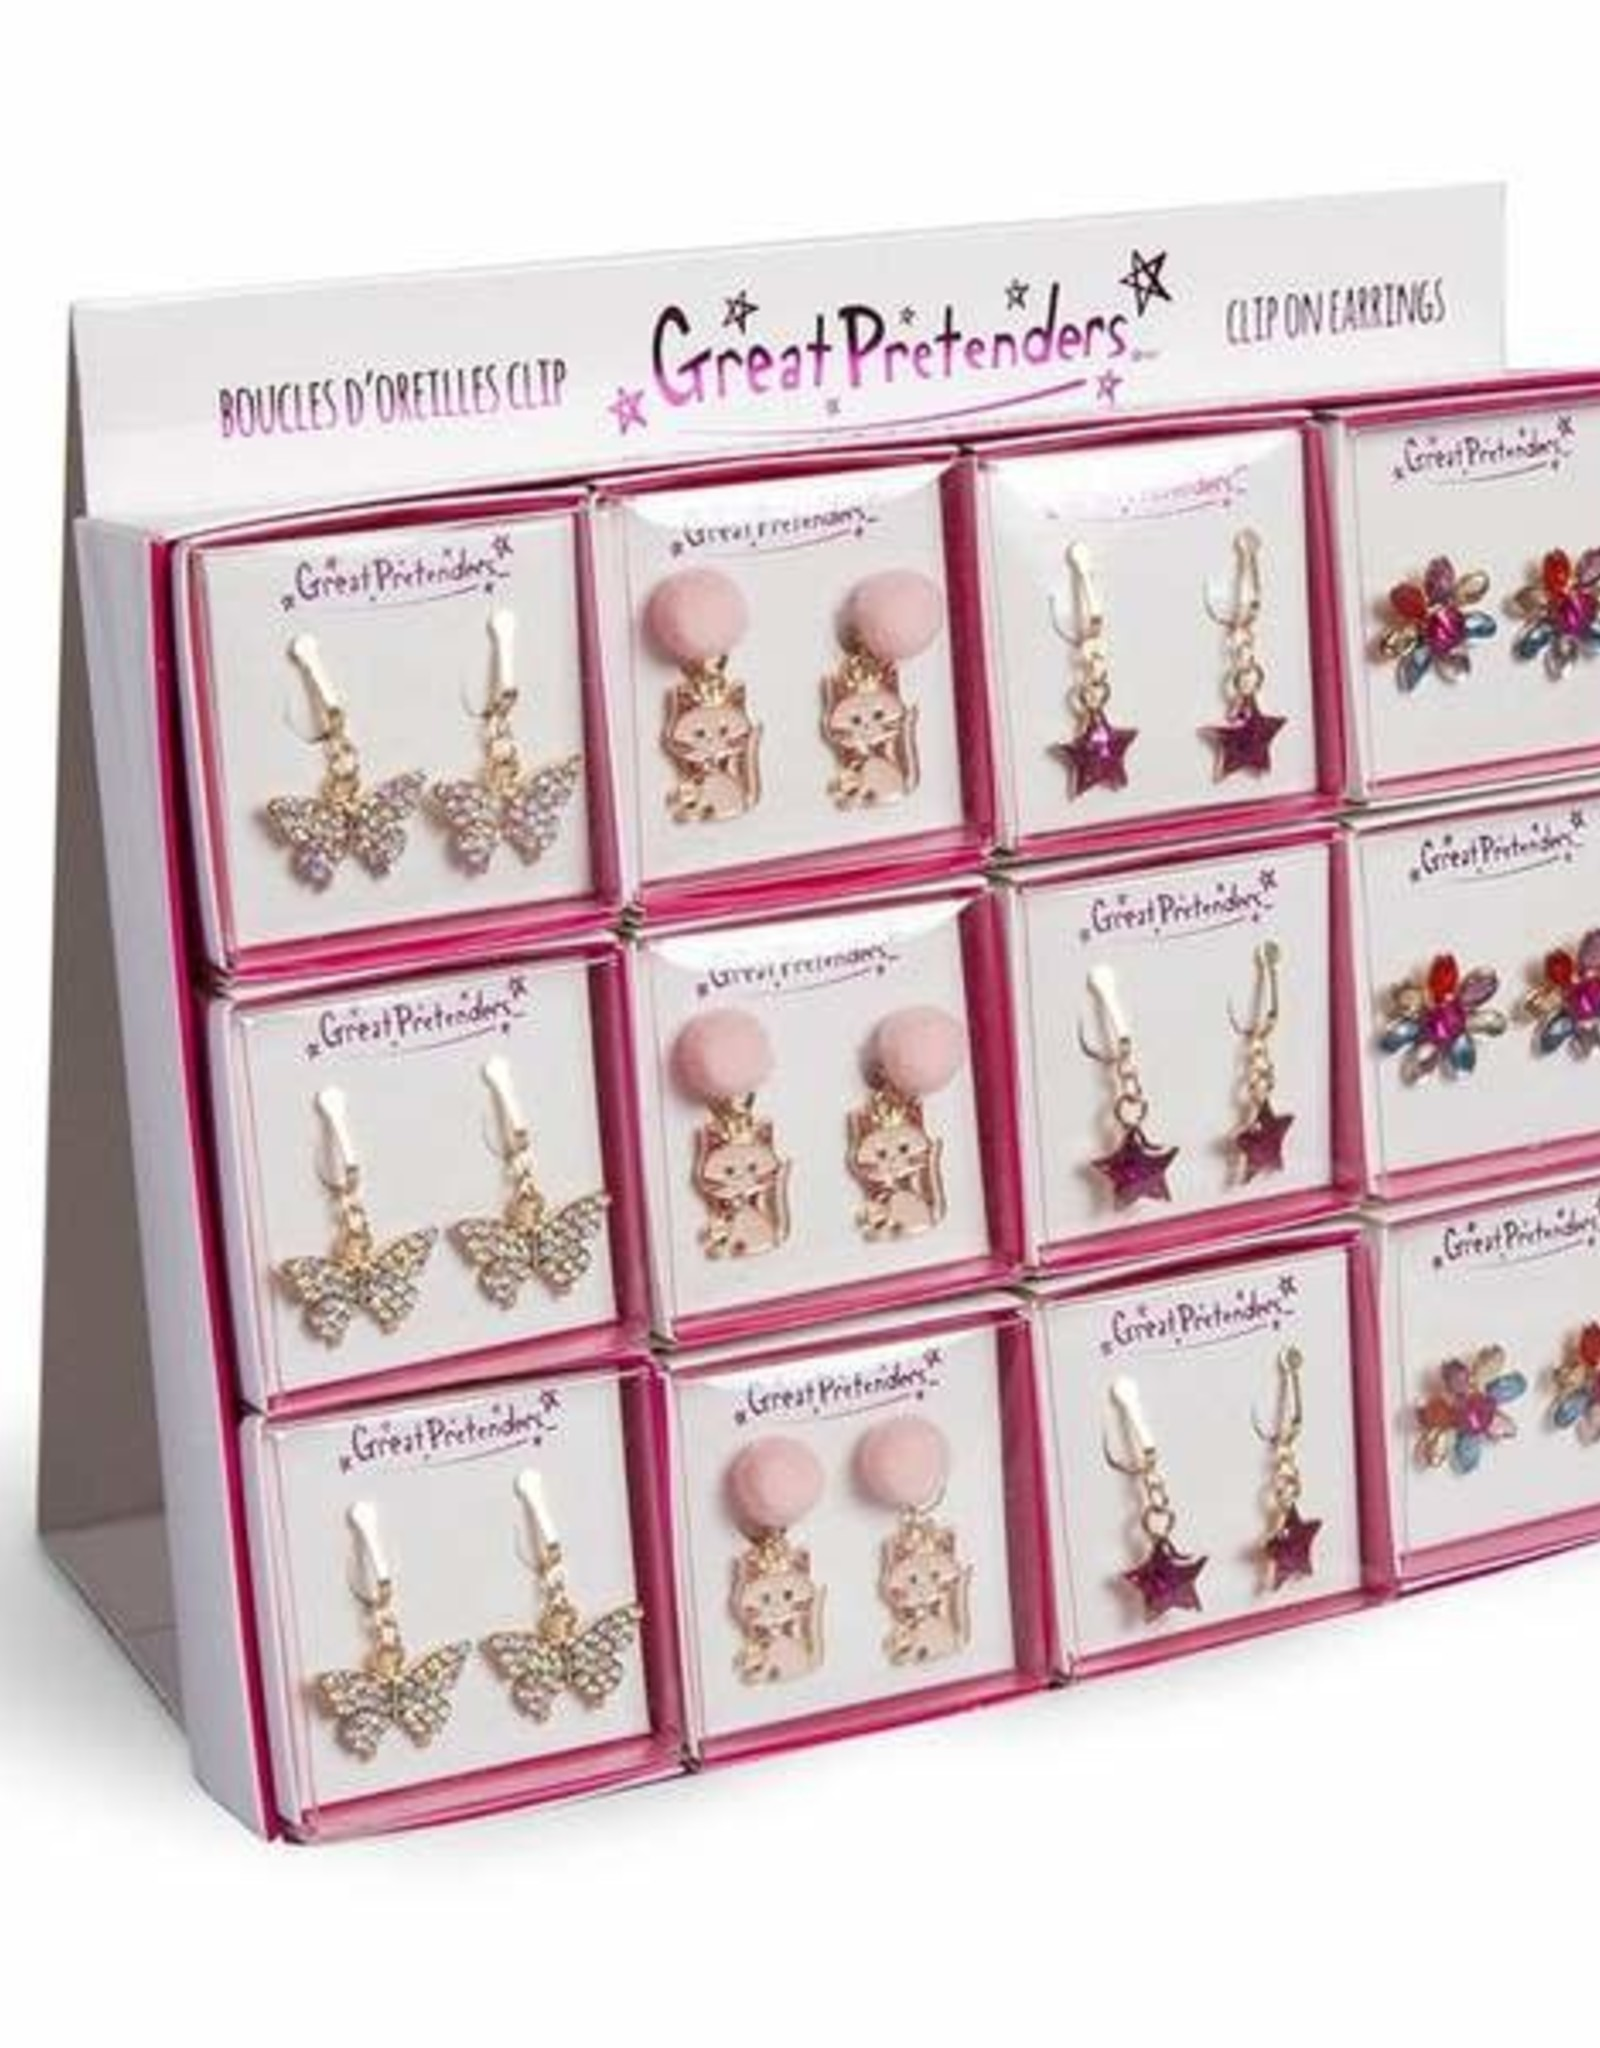 Great Pretenders Clip On Earrings, Assorted, PDQ Display, 24 Pcs